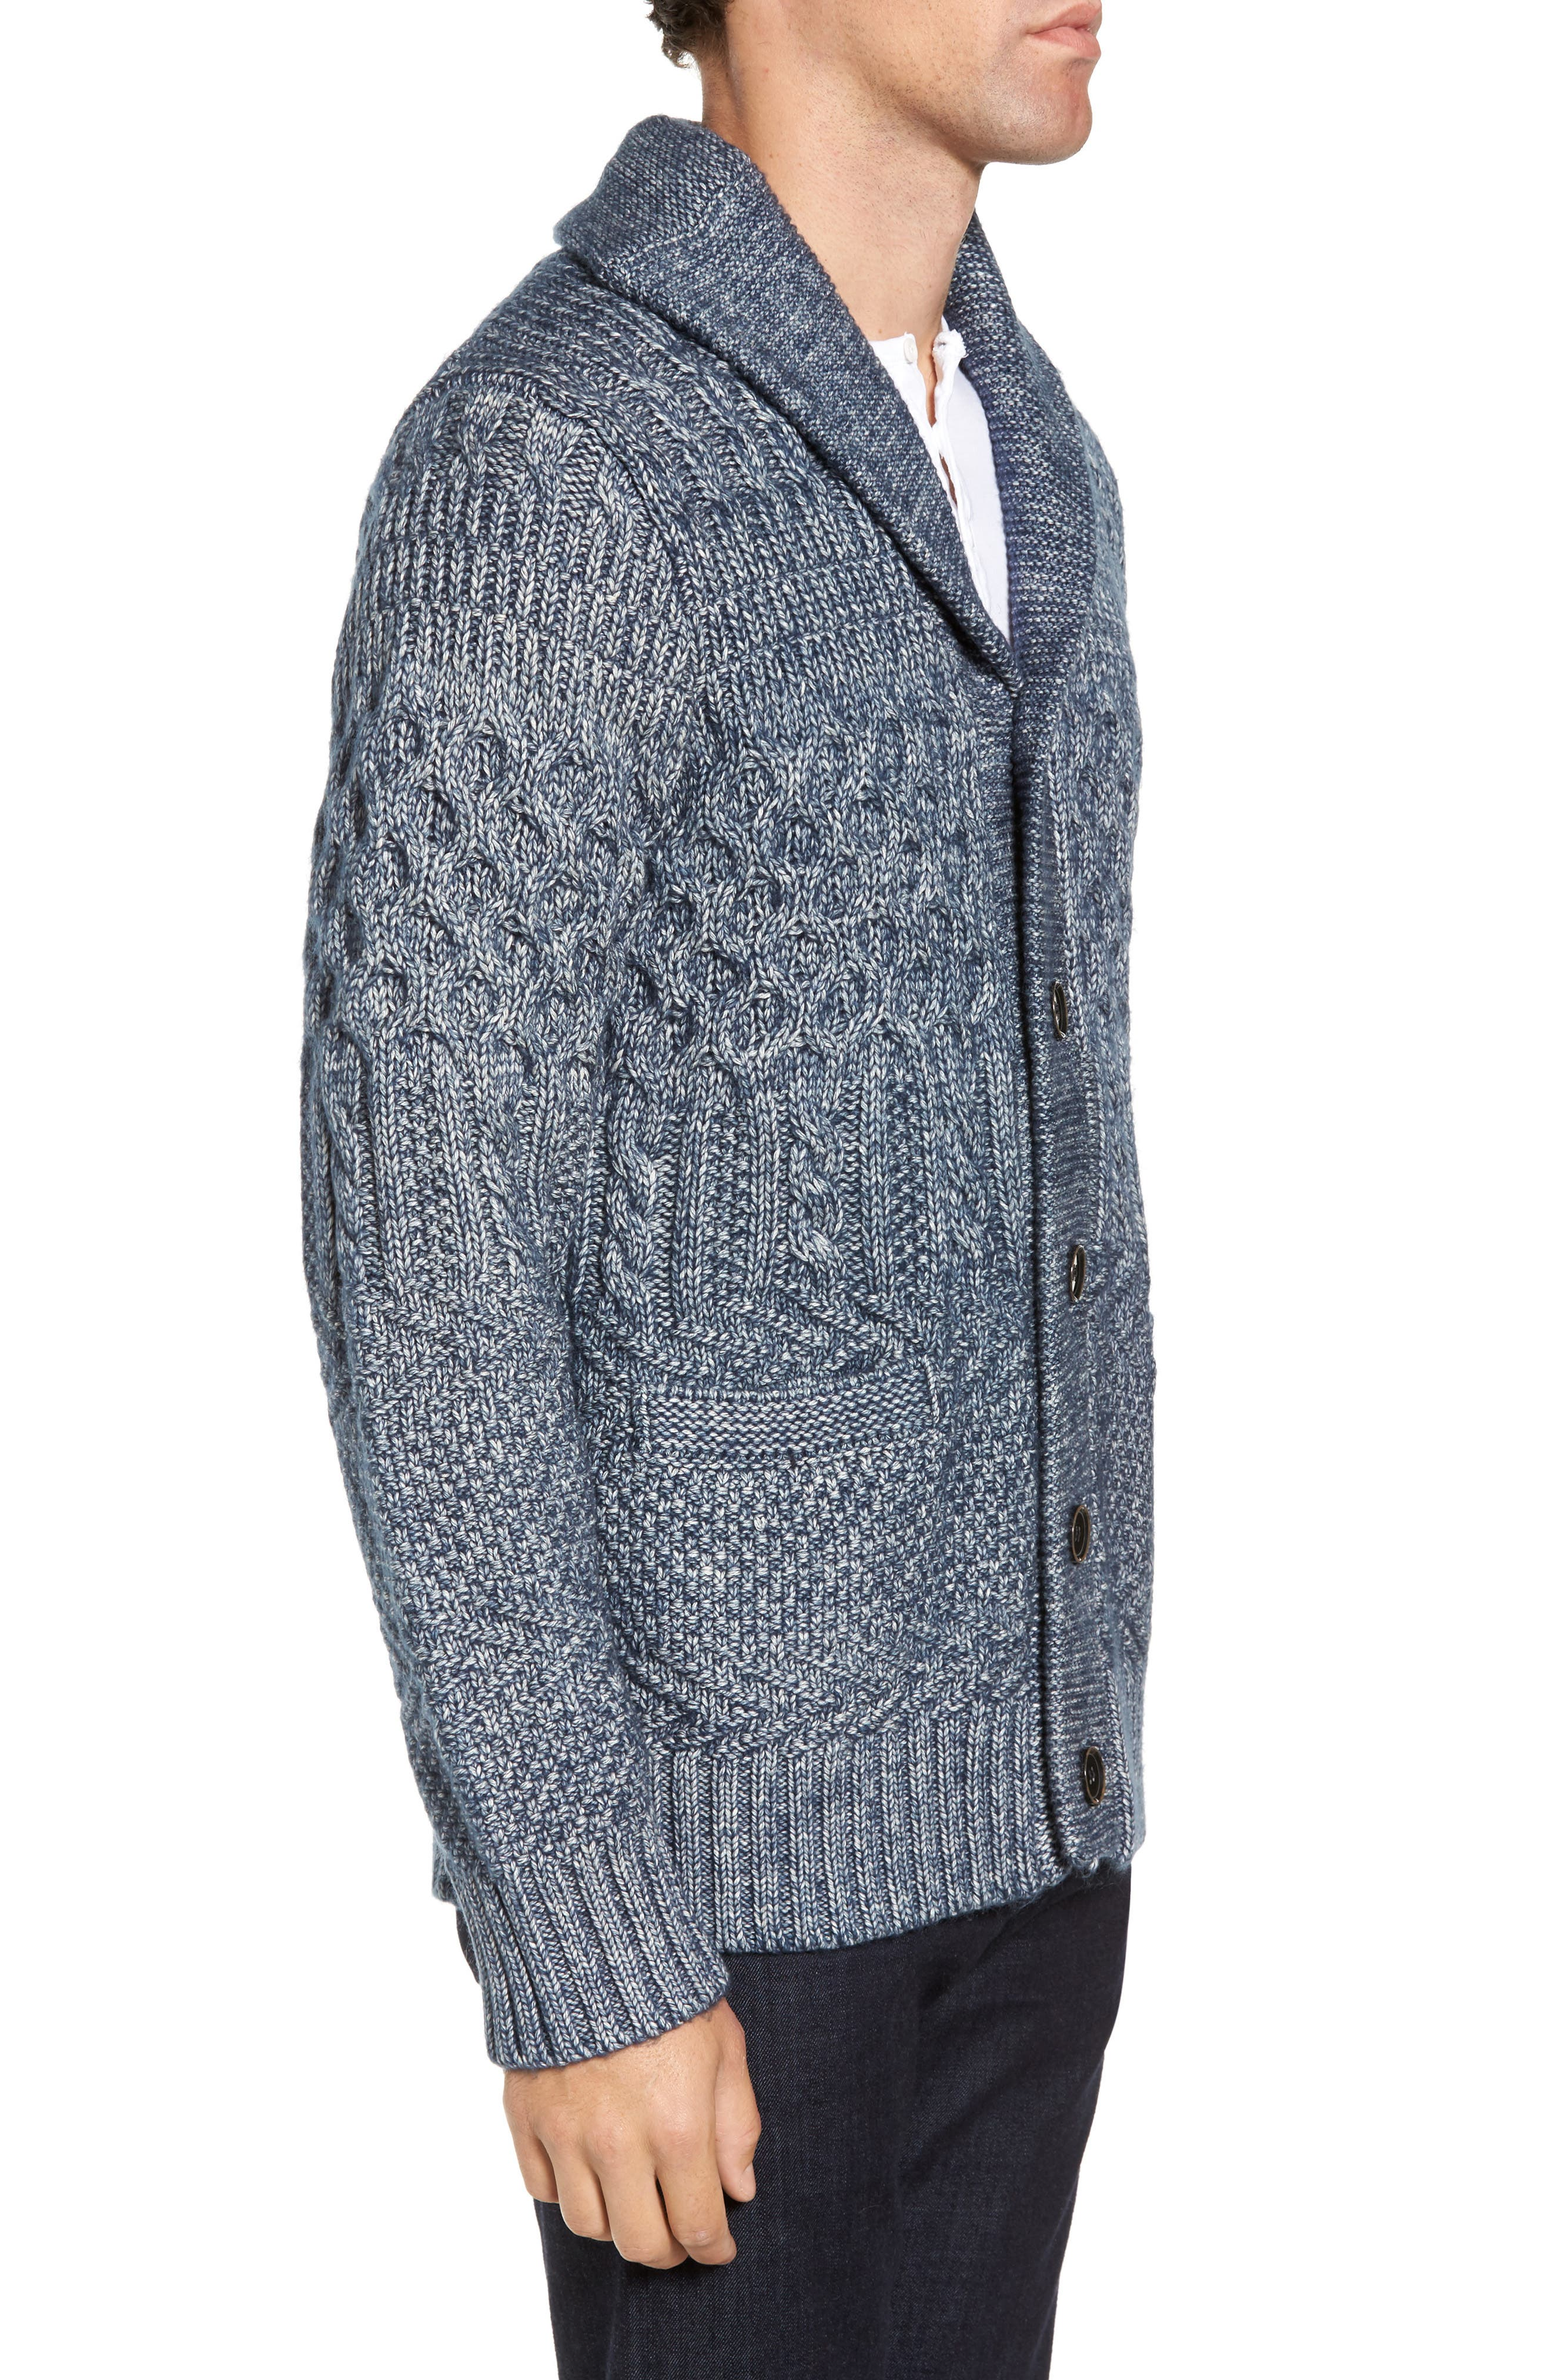 Cable Knit Cardigan,                             Alternate thumbnail 3, color,                             404